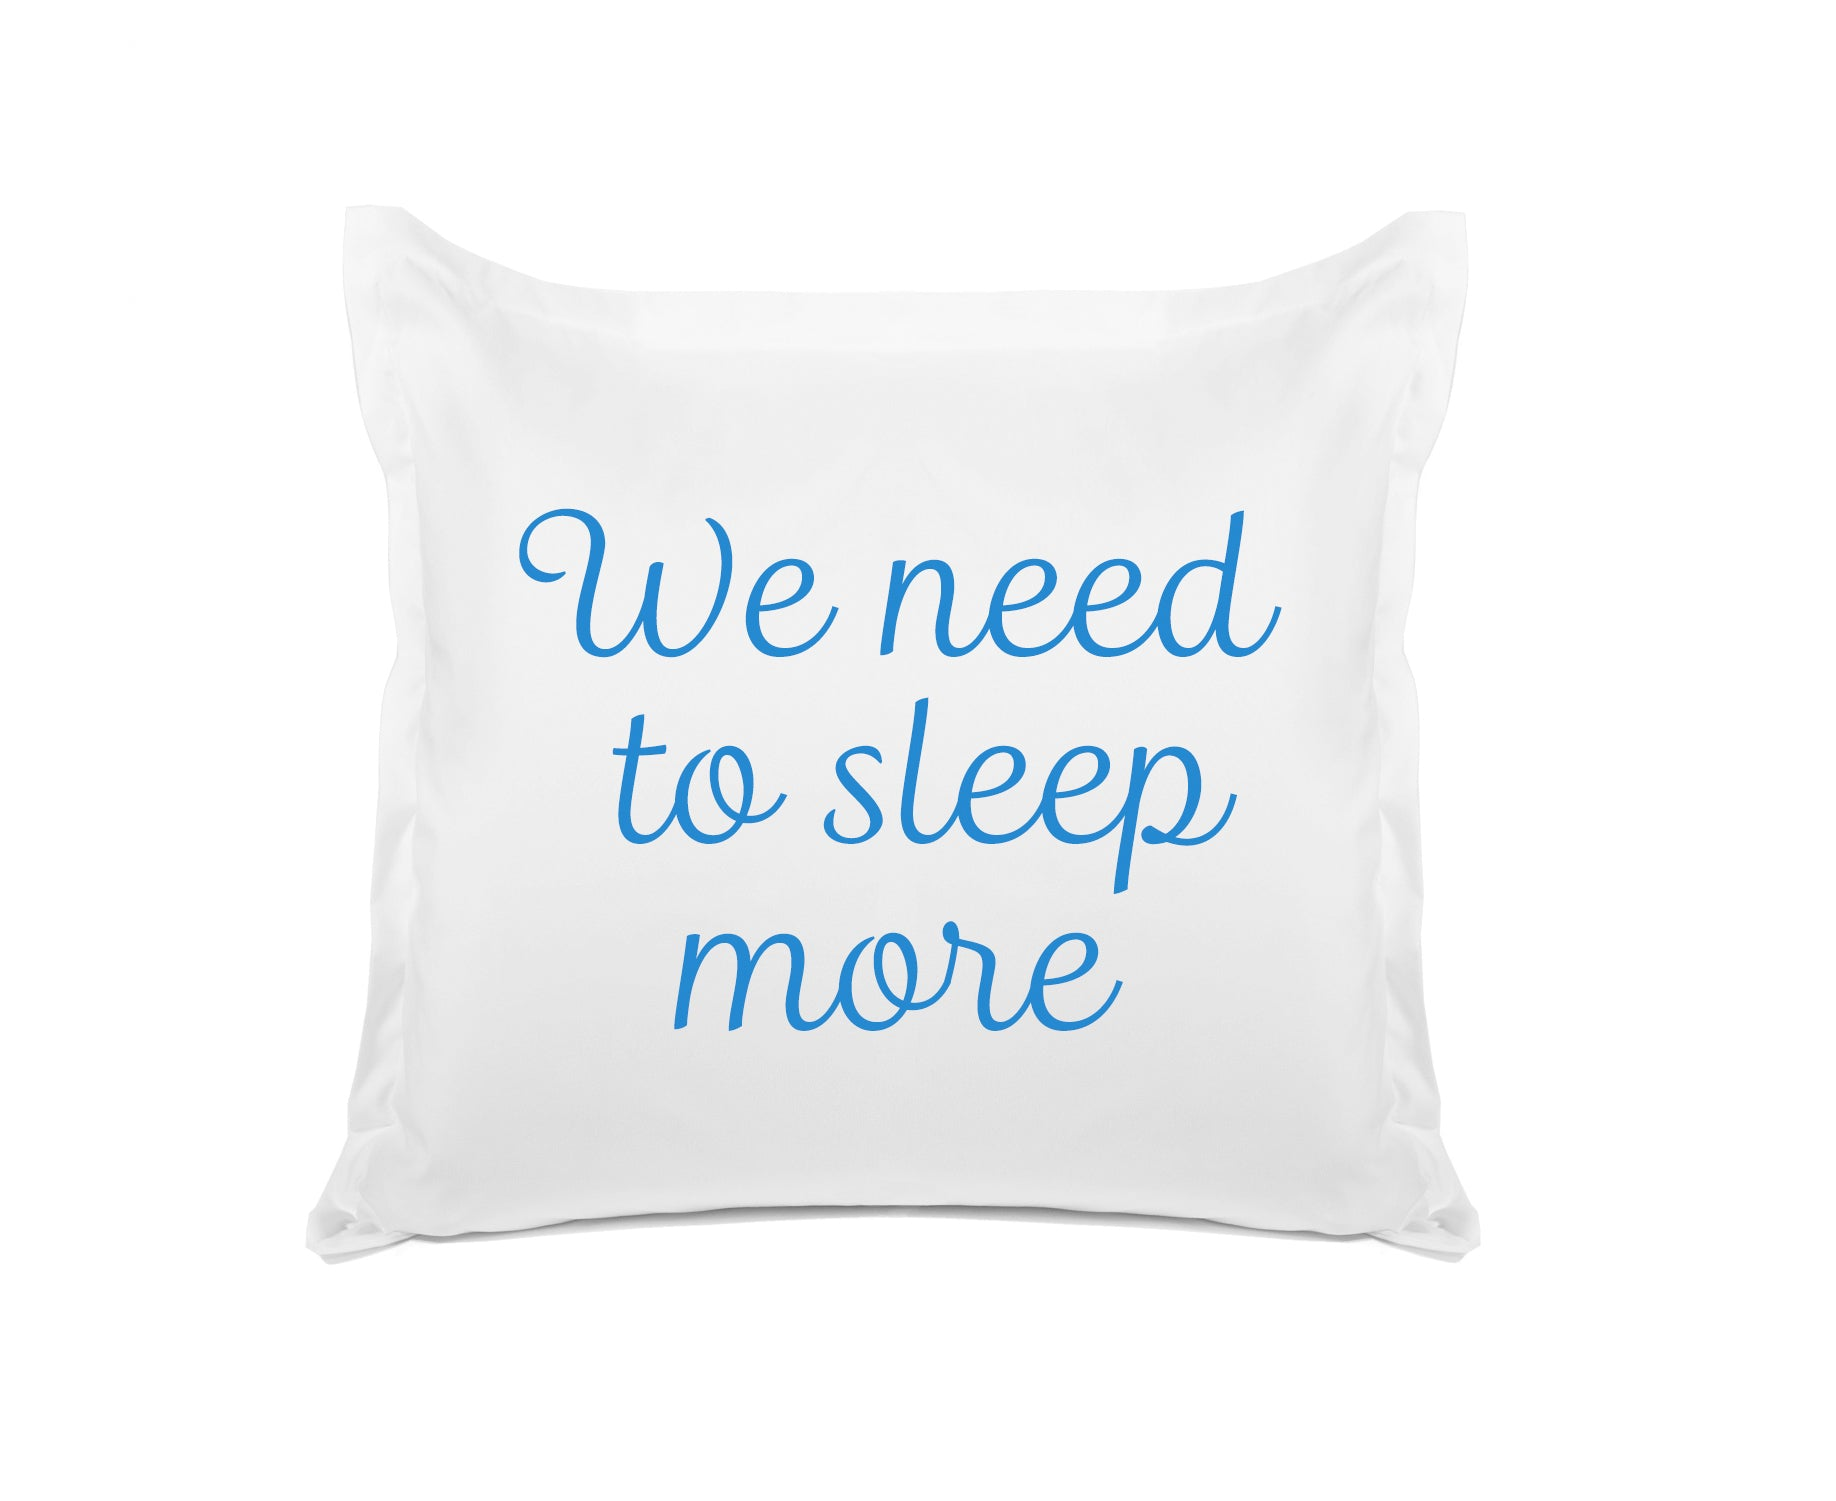 We need to sleep more quote pillow Di Lewis bedroom decor